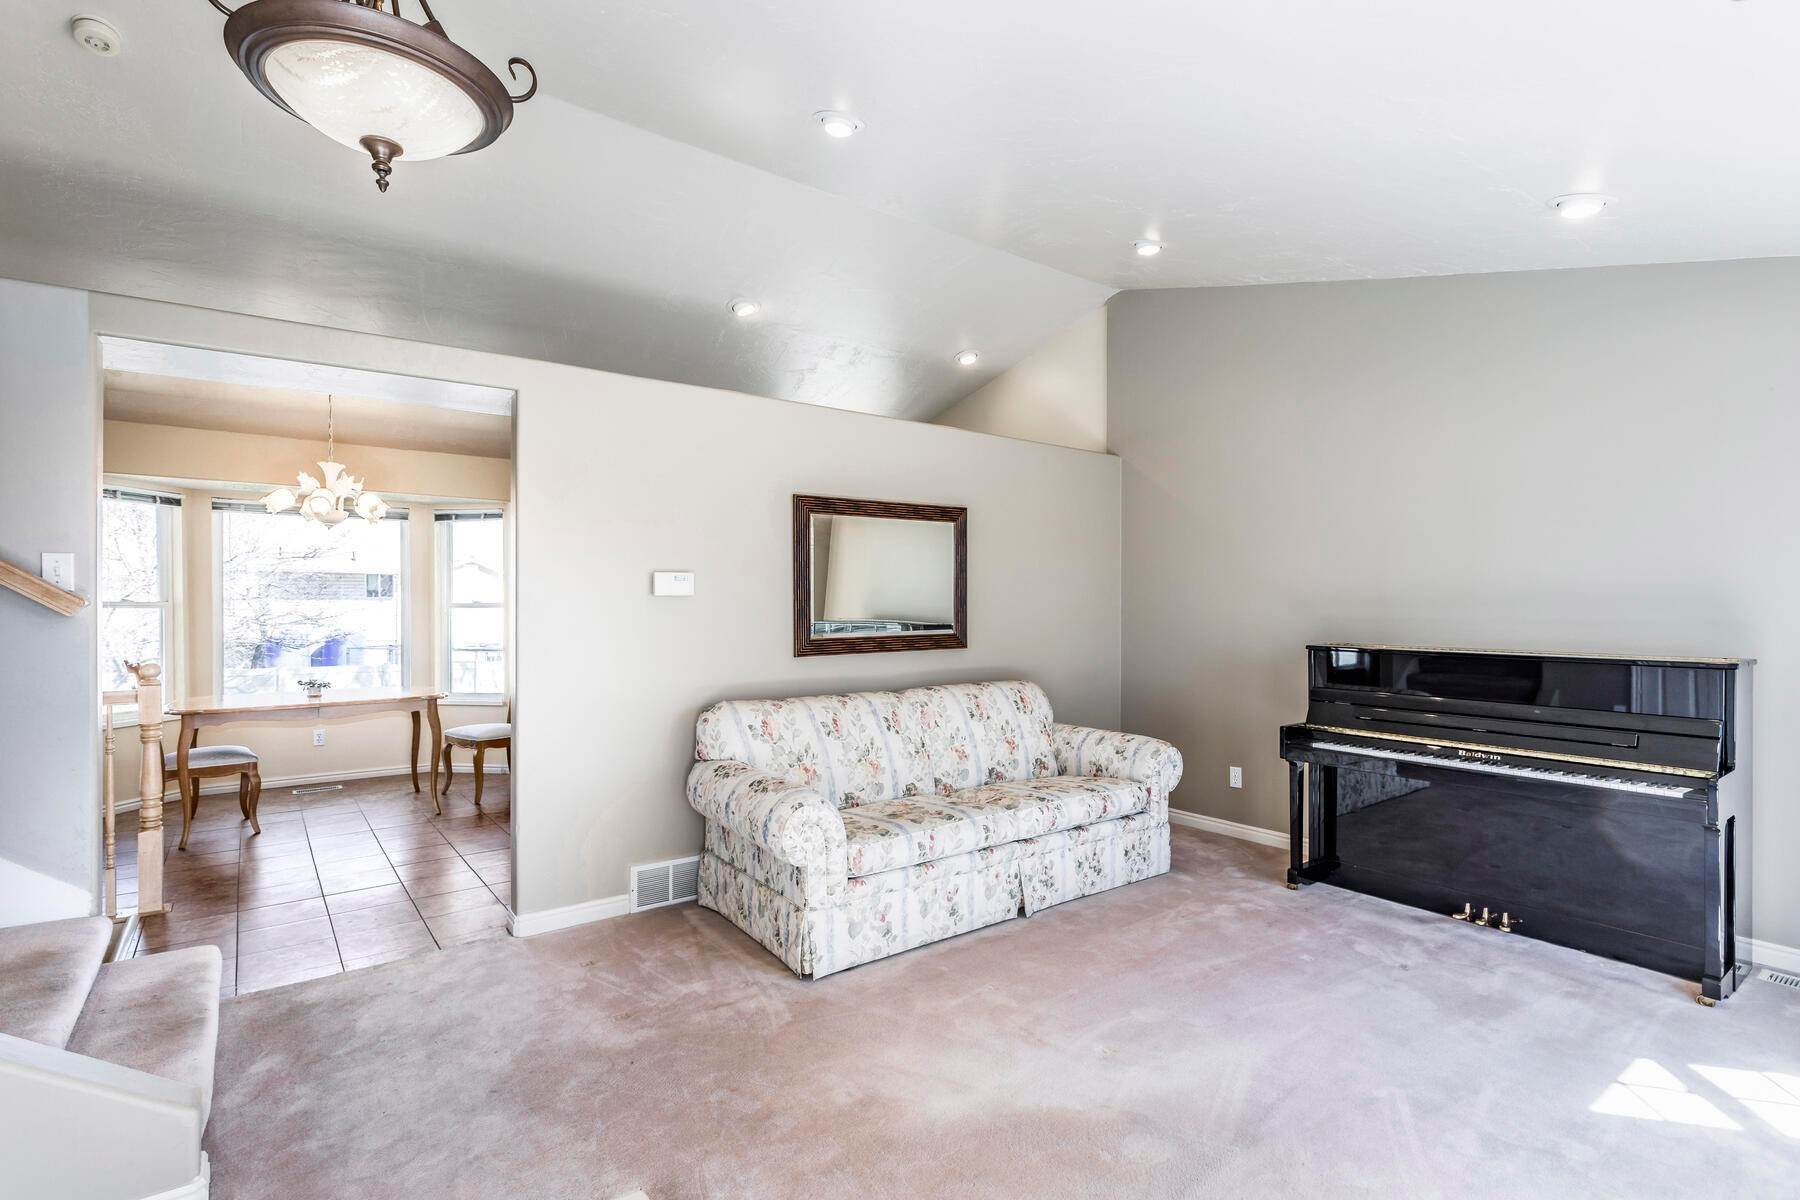 3. Single Family Homes for Sale at A Great Riverton House 3278 West 11925 South Riverton, Utah 84065 United States